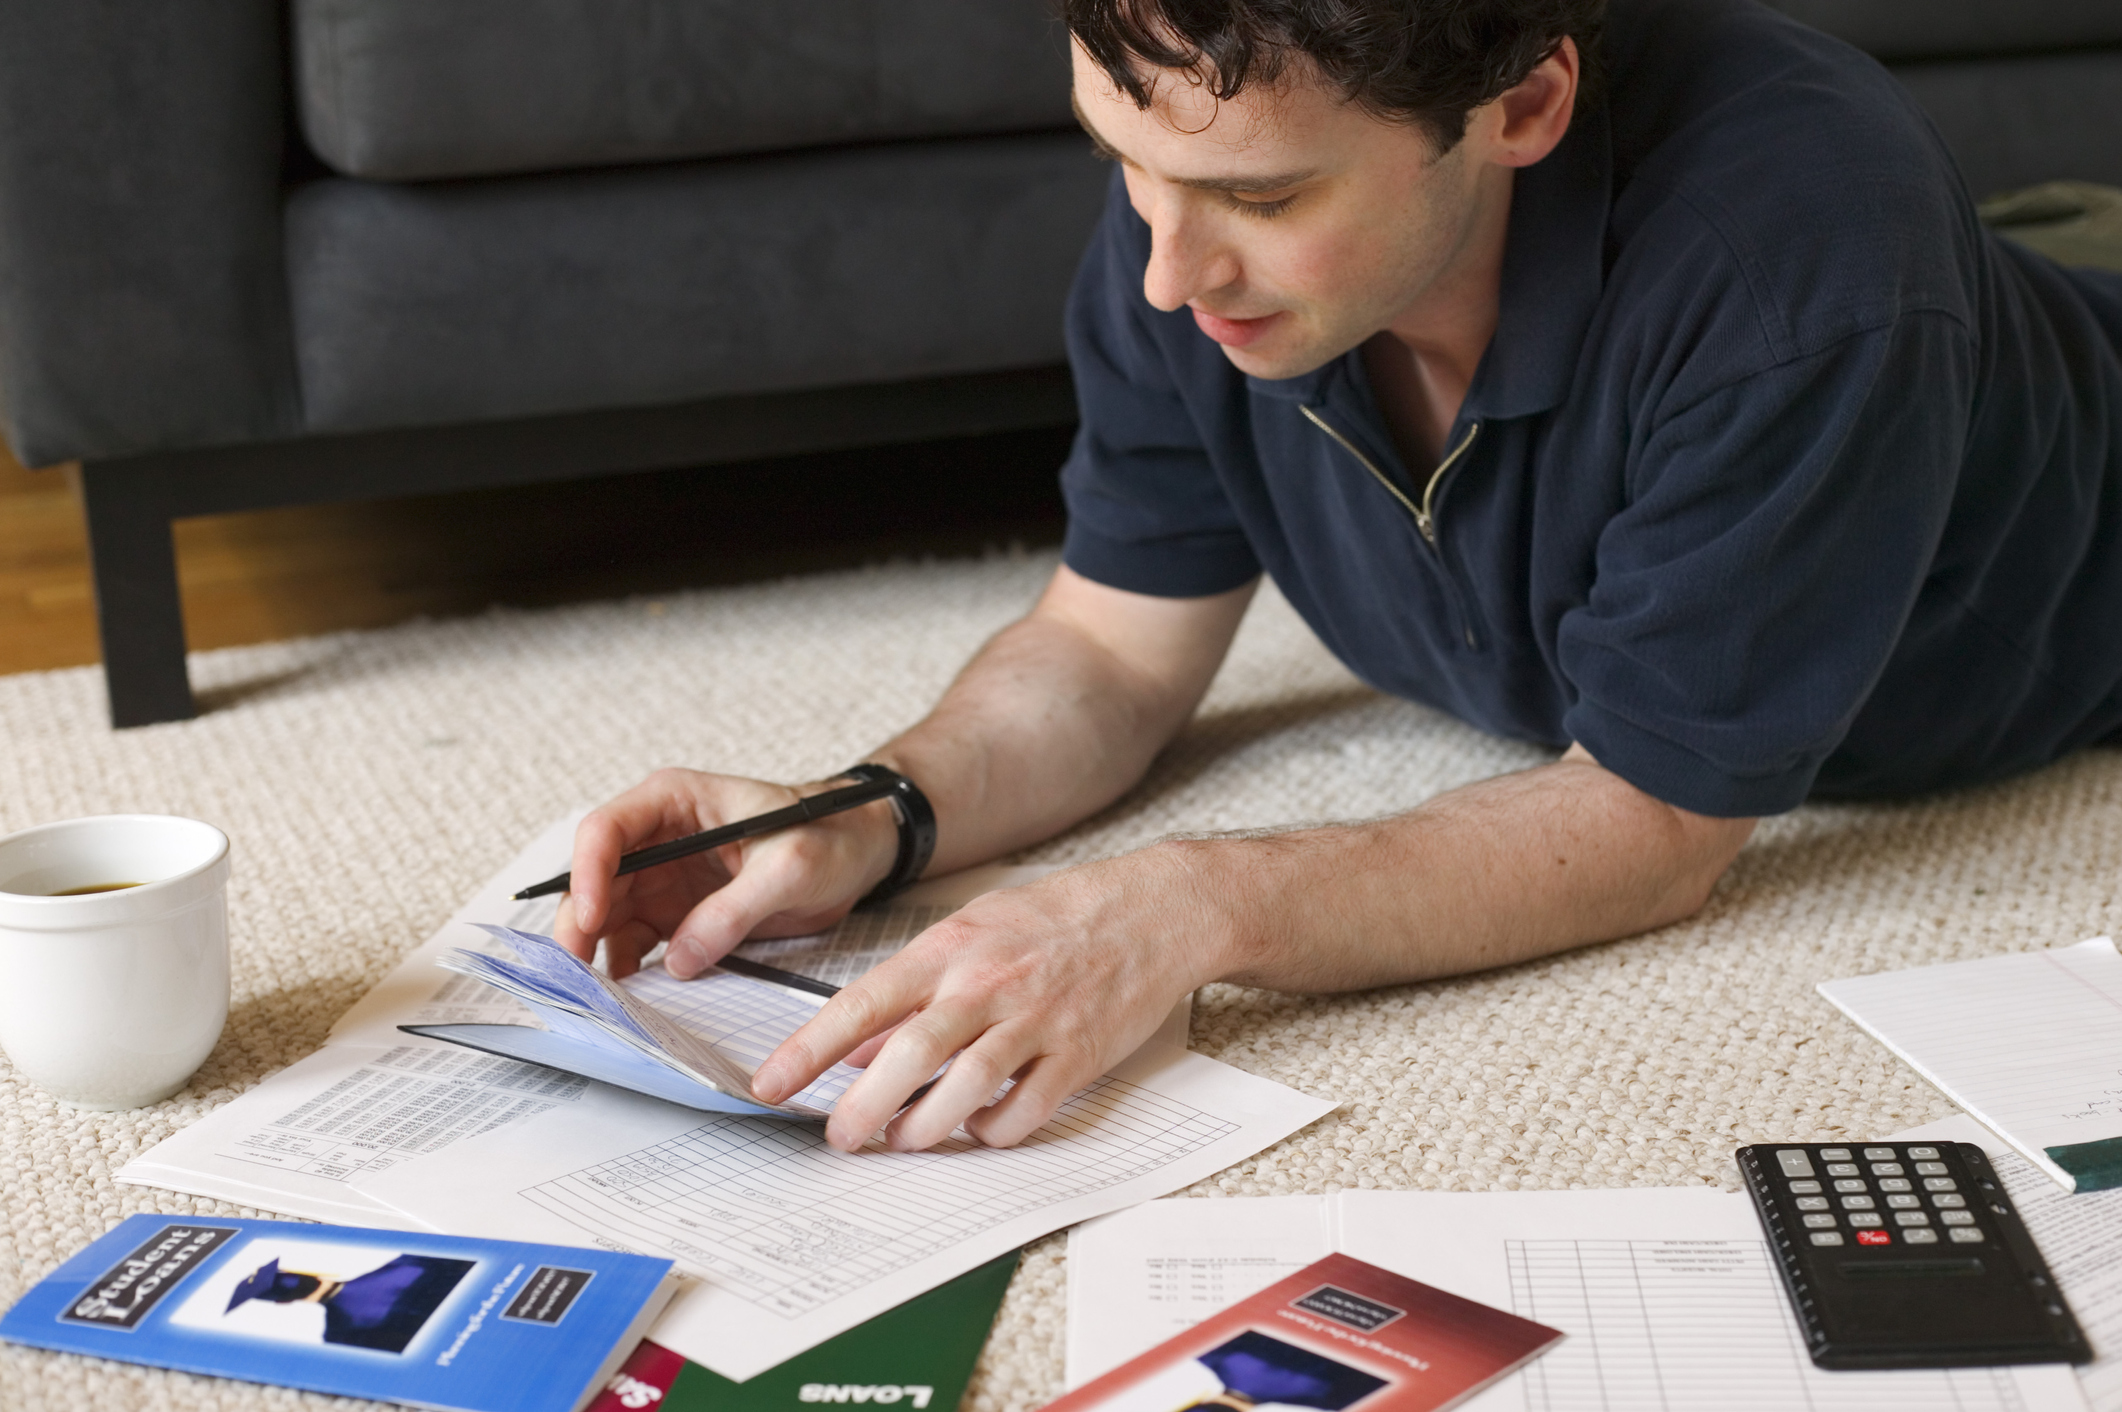 A young man making calculations in a ledger amid college brochures.